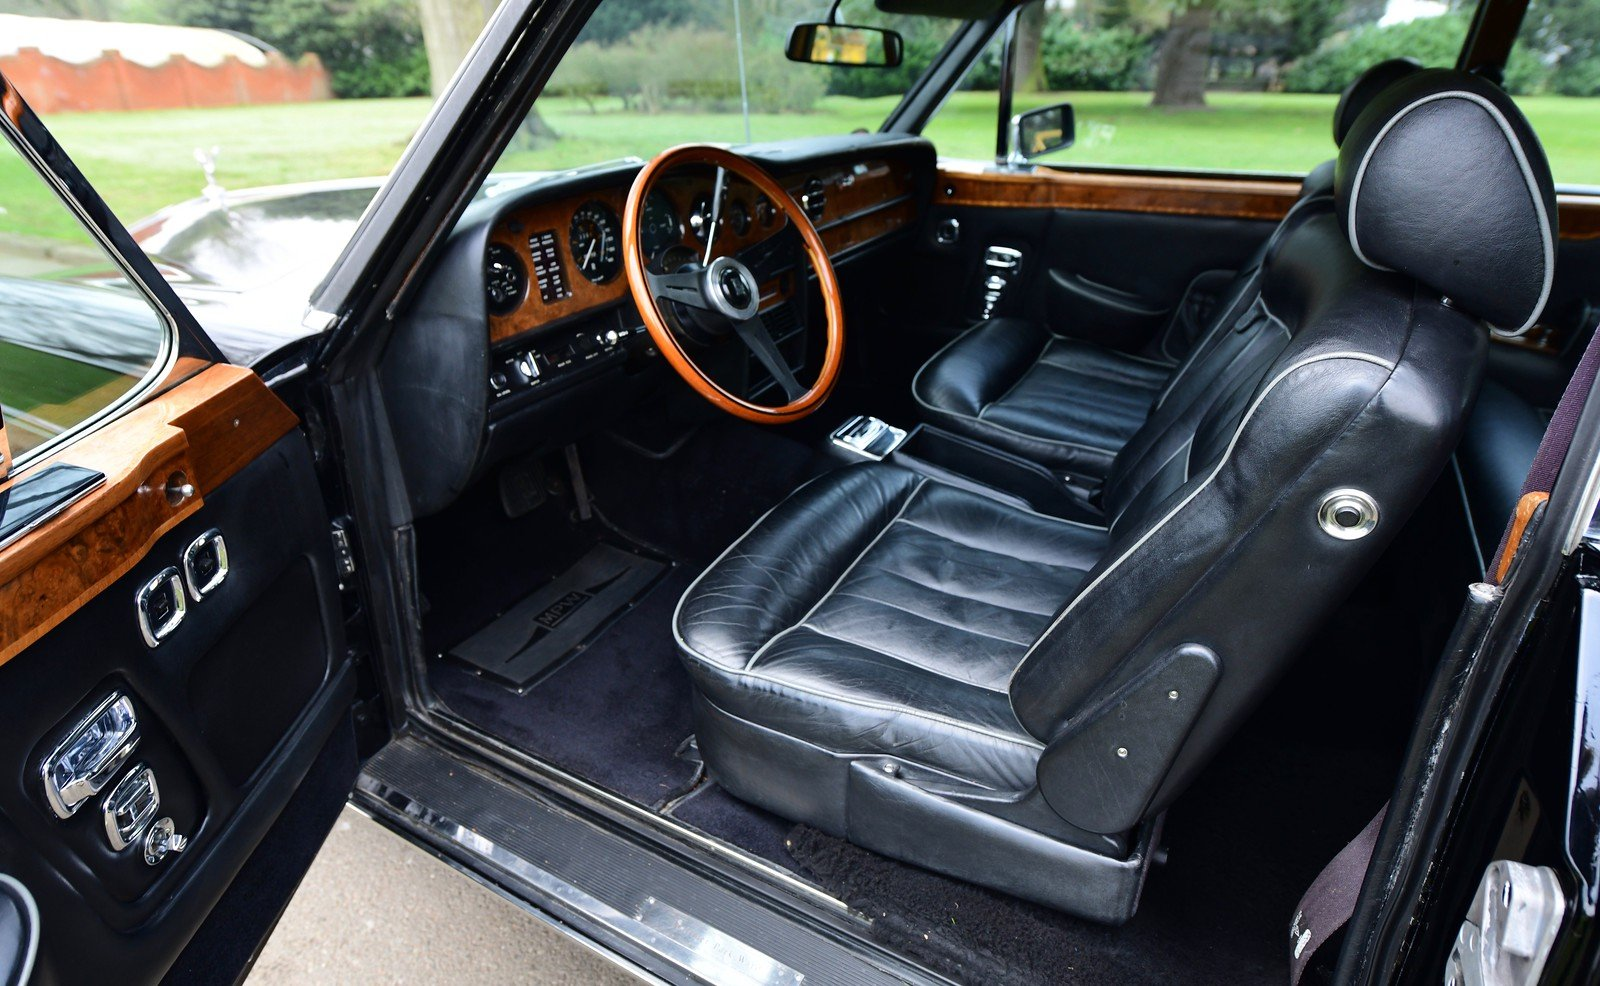 1976 Rolls Royce Corniche II Coupe LHD SOLD (picture 4 of 6)